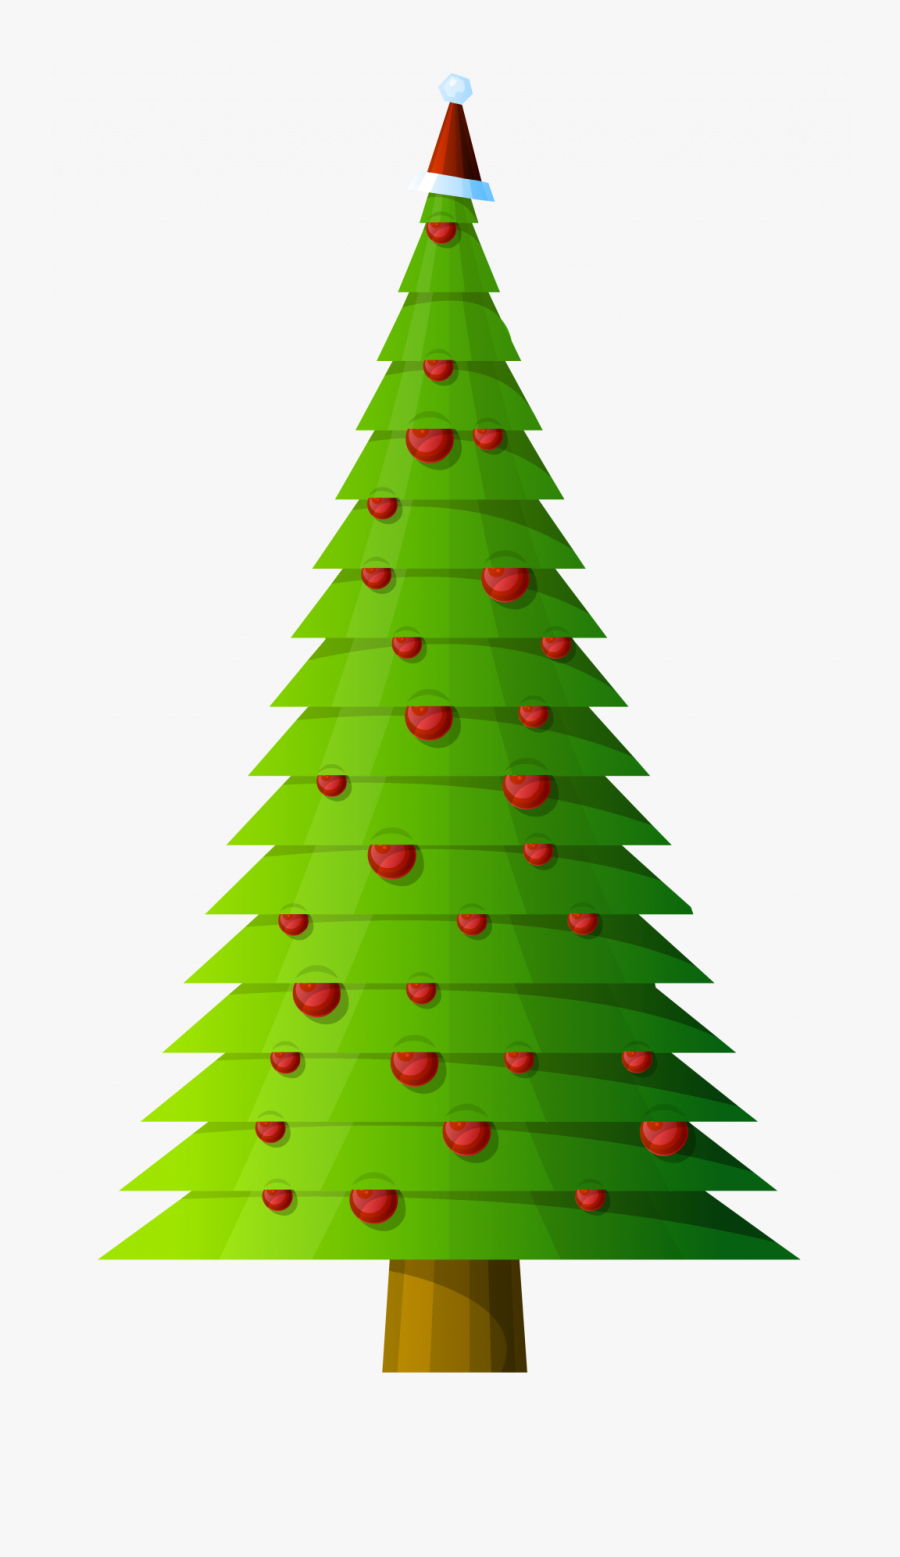 Christmas Tree Clipart Free : christmas, clipart, Christmas, Clipart, Border, Transparent, ClipartKey